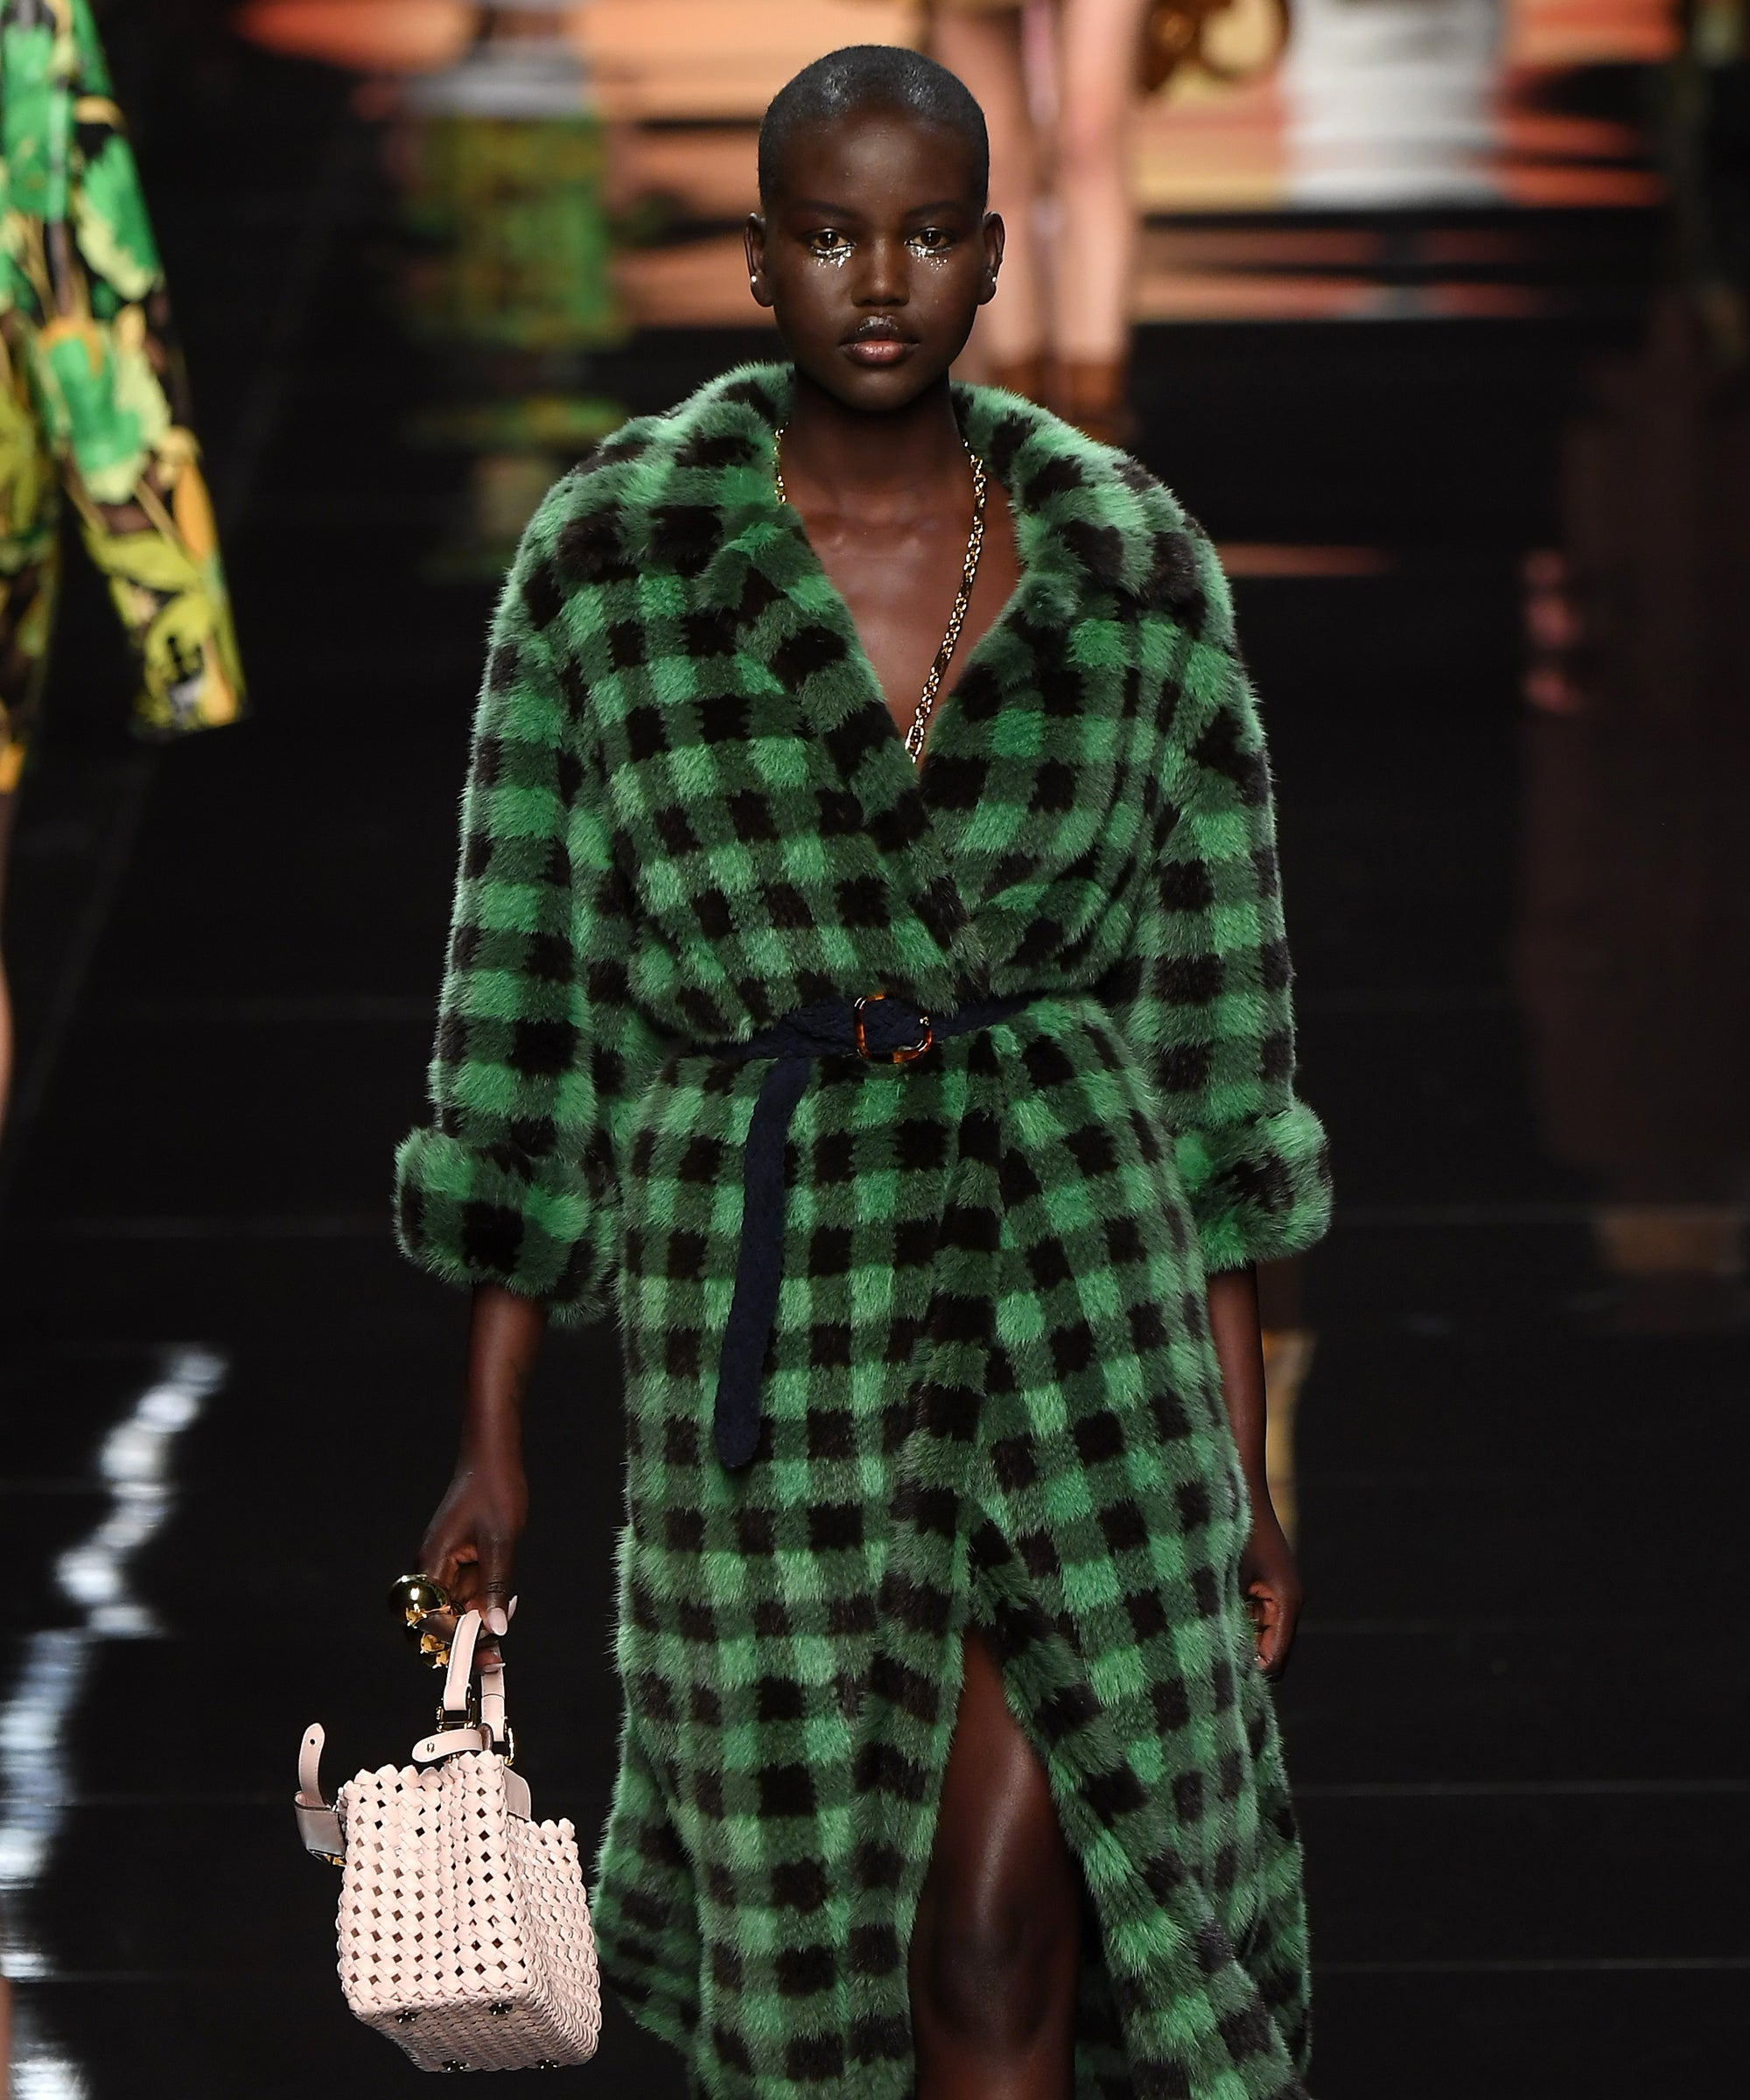 Post-Karl Lagerfeld, Fendi Aims To Feel Like Your Favorite Vacation